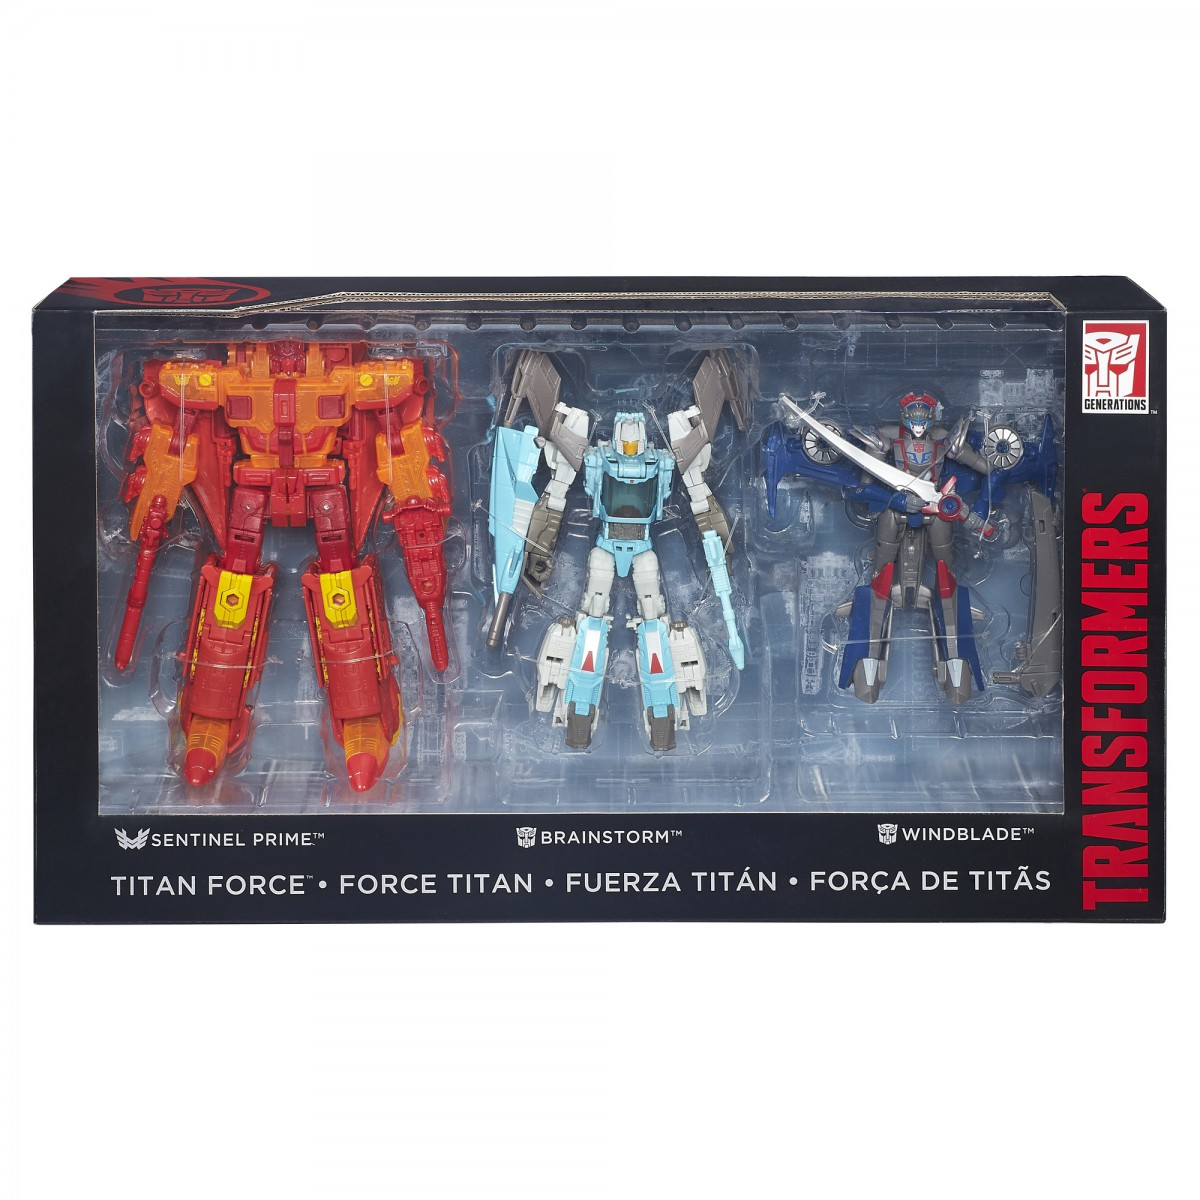 Transformers News: San Diego Comic Con 2016 Exclusive Titans Force Set Official Images and Description